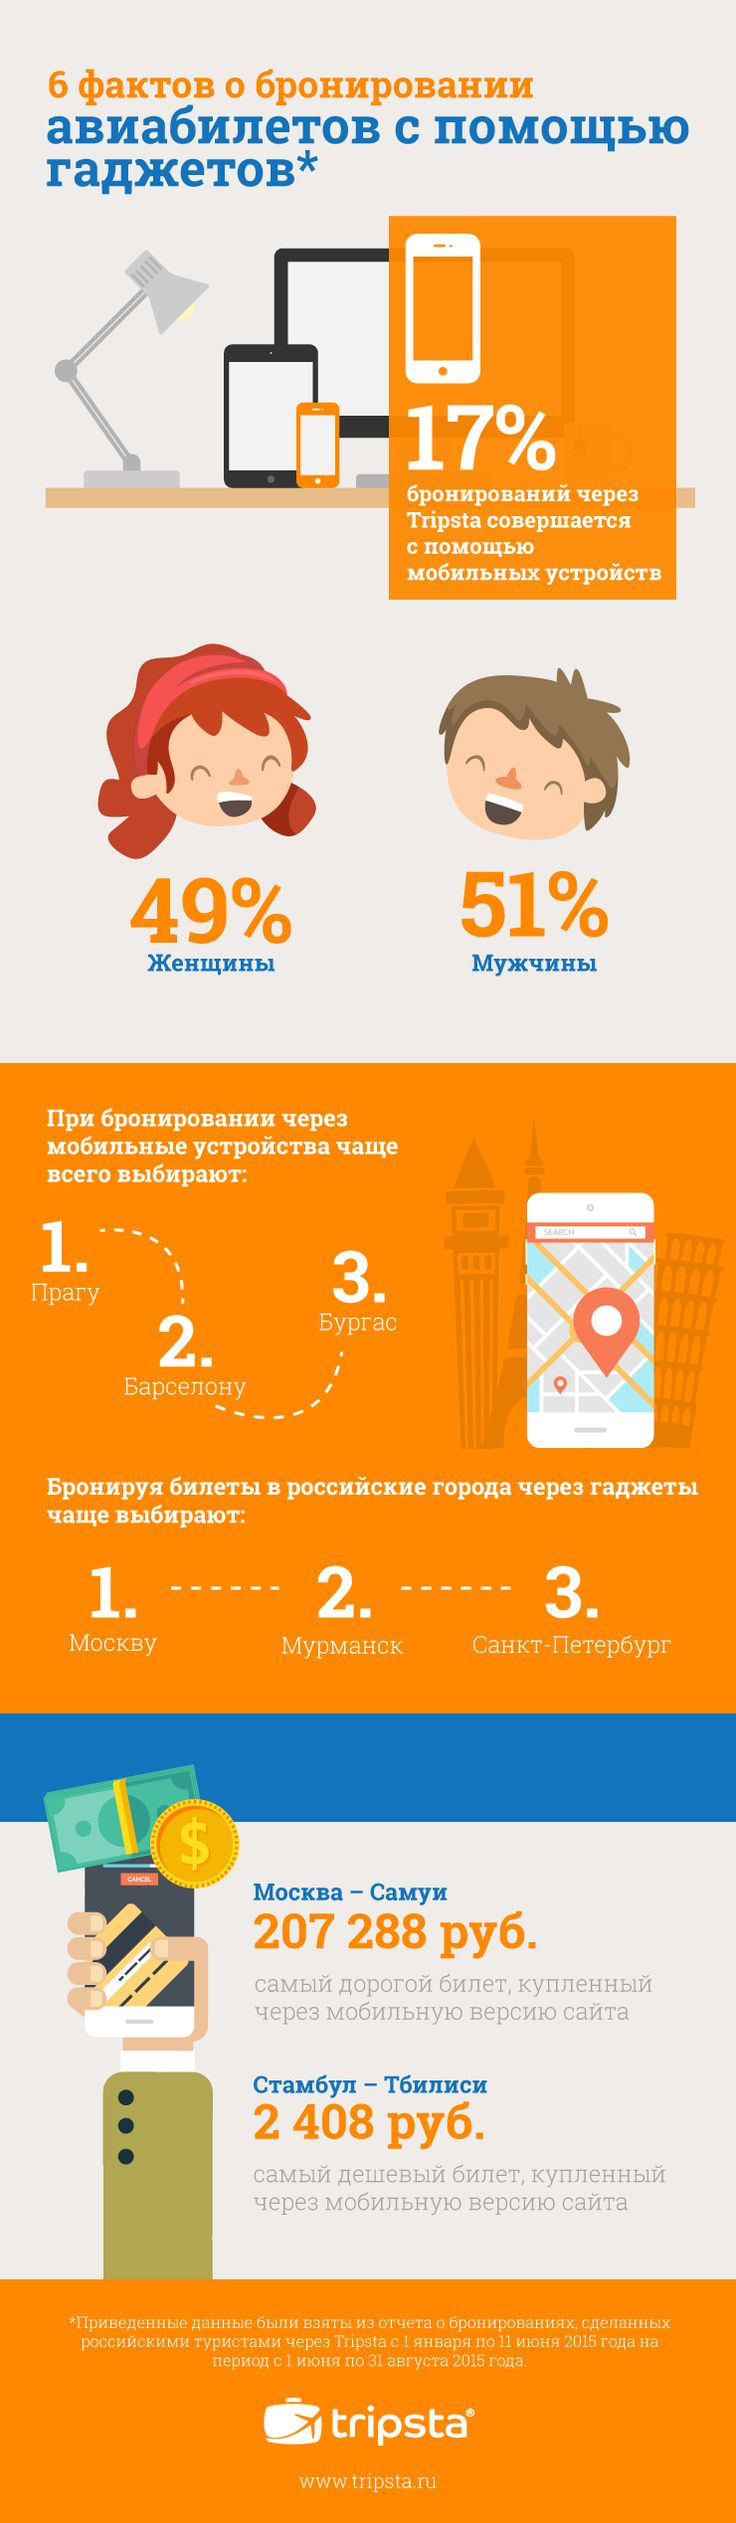 Mobile Trends in Russia #tripsta infographic